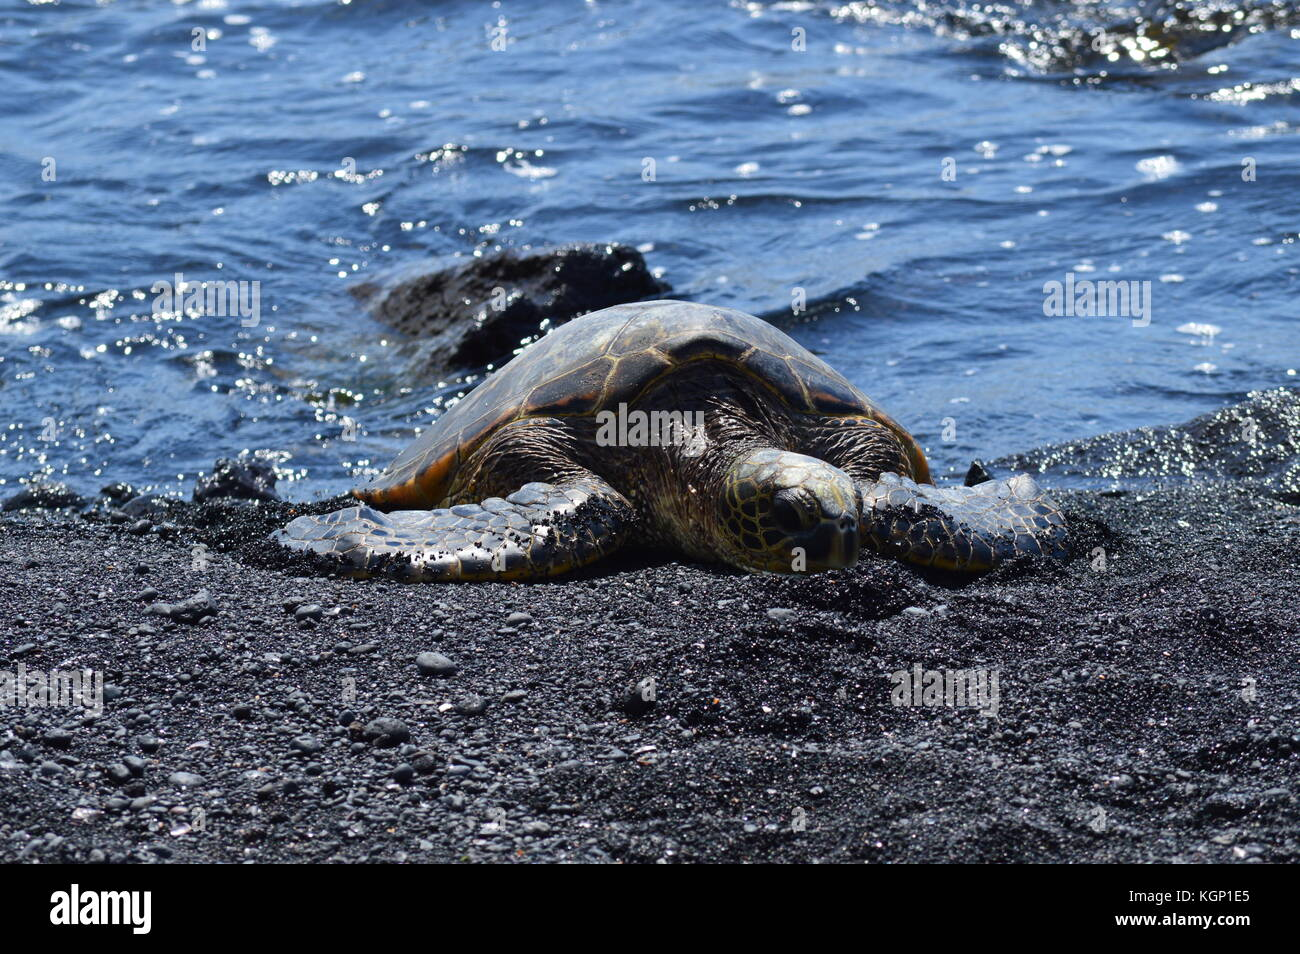 Turtles On A Black Sand Beach In Hawaii Stock Photo